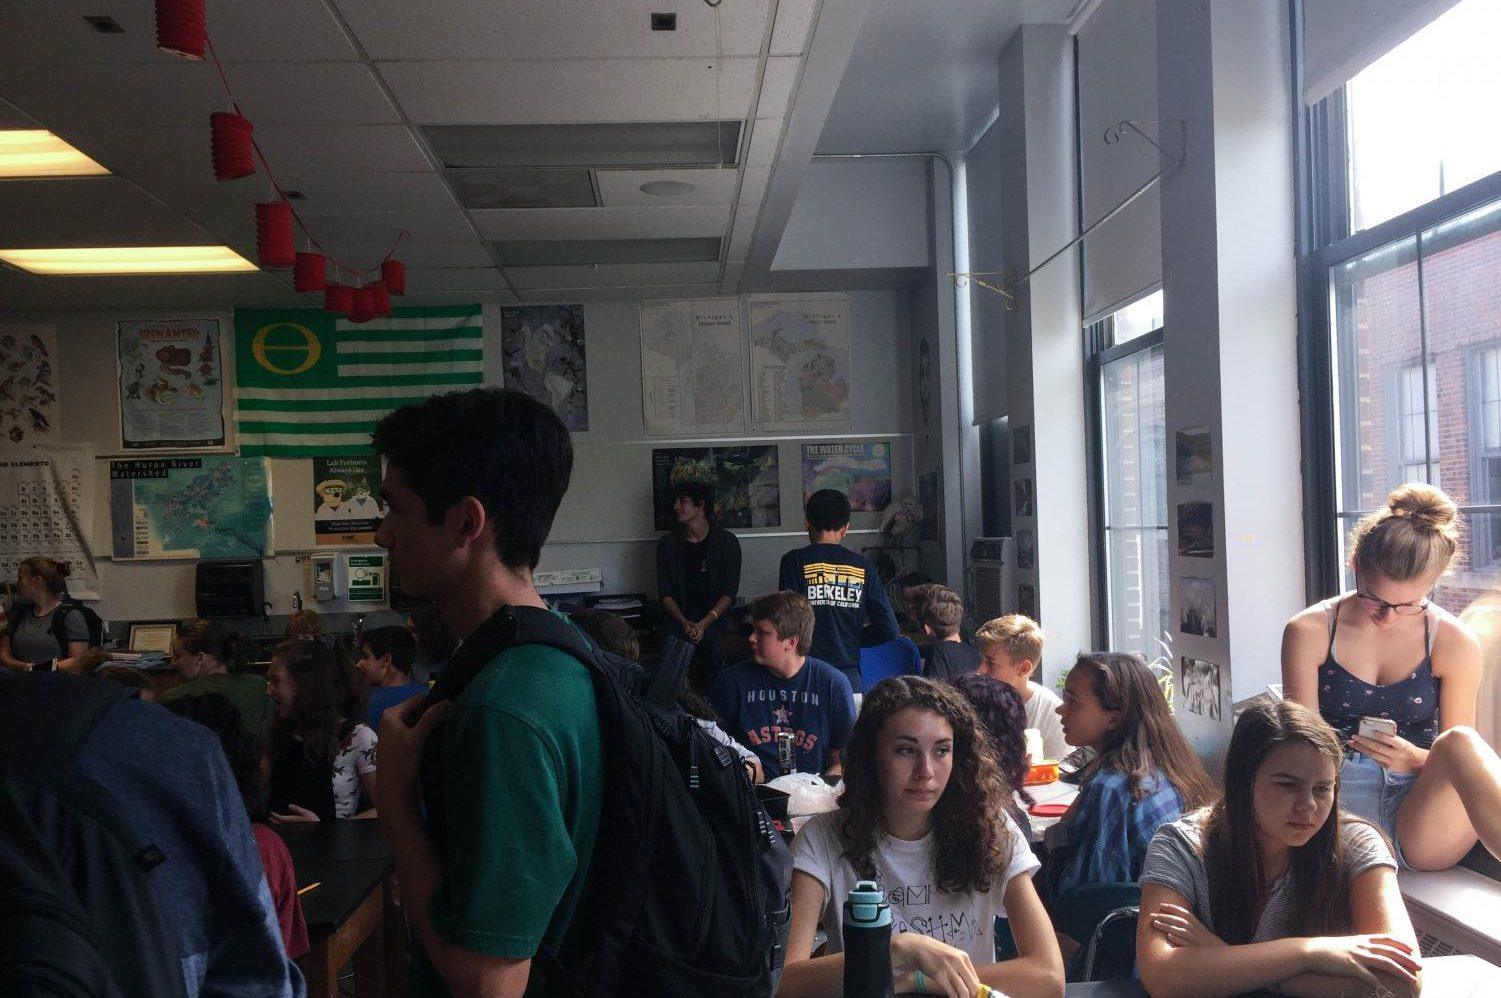 Students sit on counters, windowsills and at crowded tables during the year's first meeting of Ecology Club.